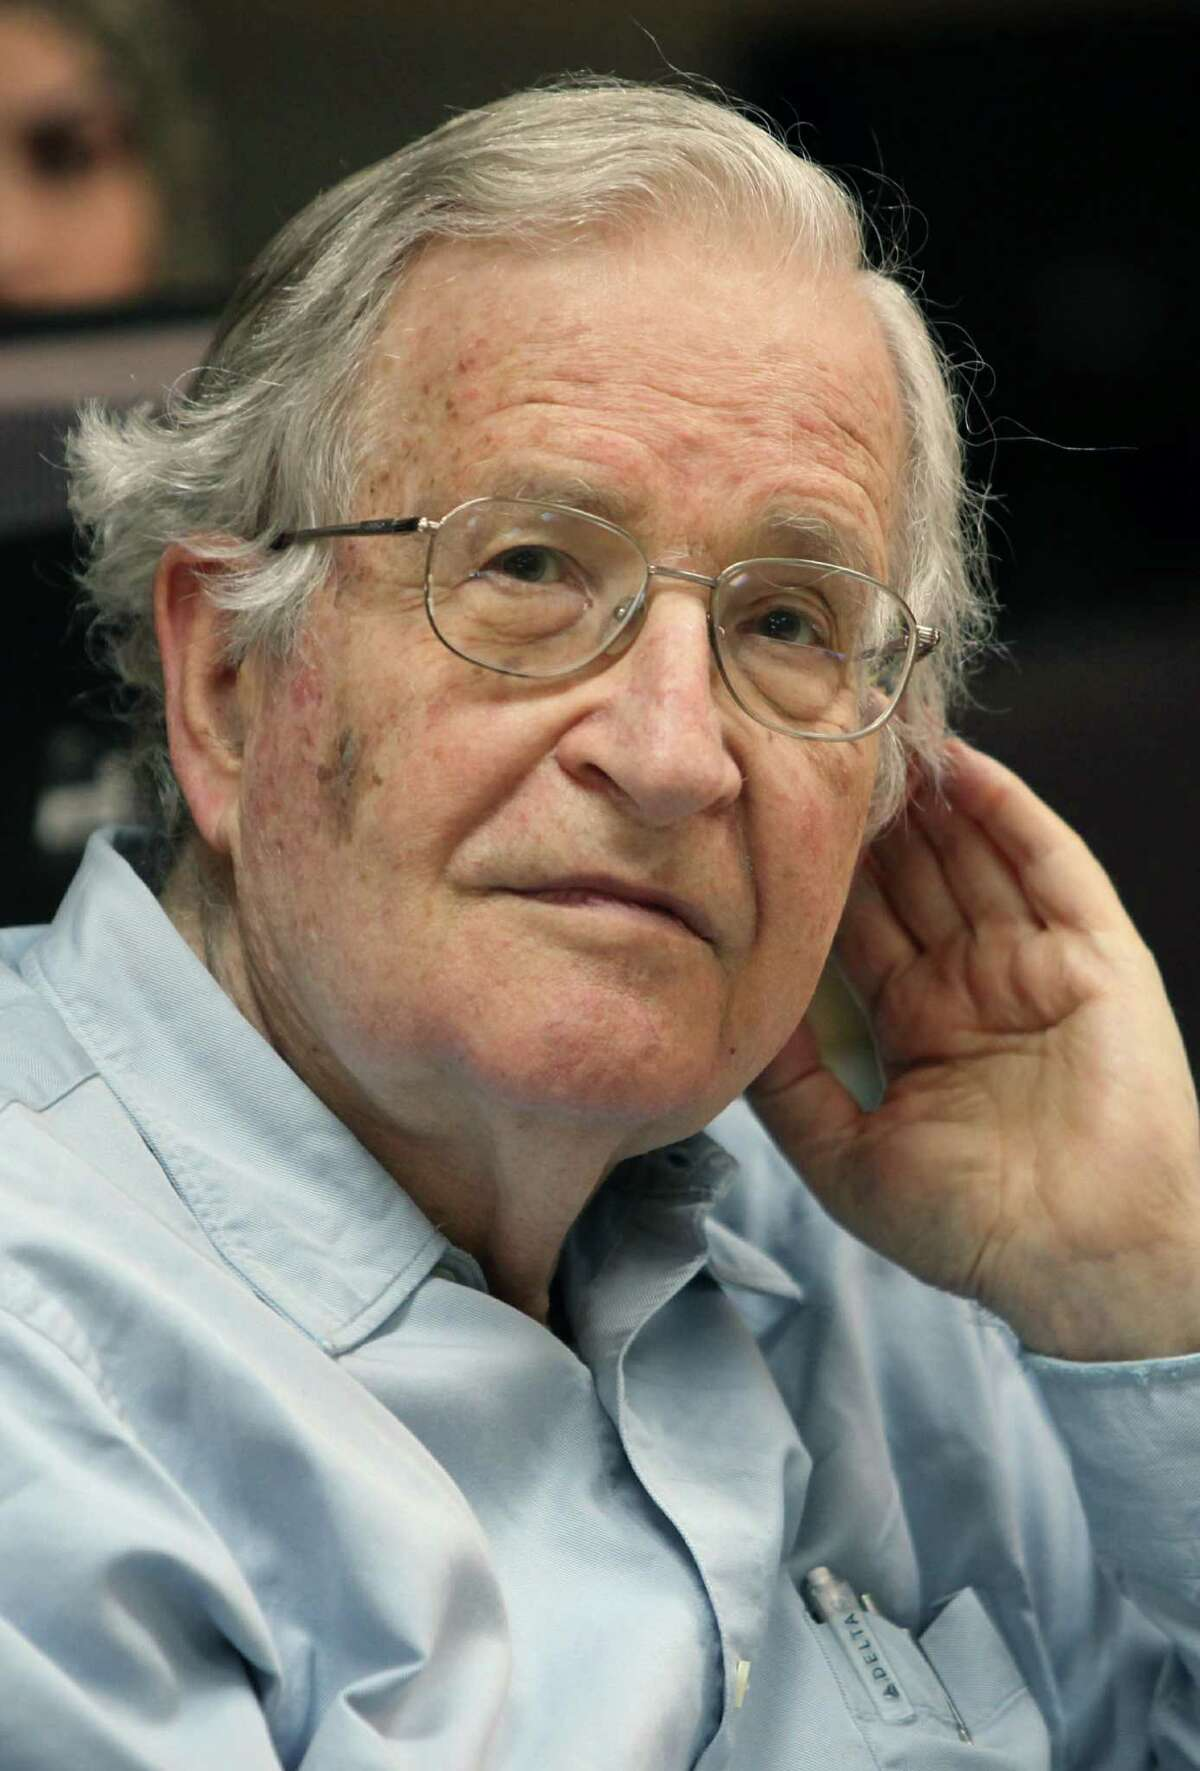 Renowned Jewish-American scholar and political activist Noam Chomsky waits to speak during a scheduled lecture at Bir Zeit University by video conference from Jordan University in Amman after he was officially barred from entering Israel and the West Bank, on May, 18, 2010. Chomsky had been invited to speak at Bir Zeit University today near the Palestinian West Bank city of Ramallah, but was stopped from entering the West Bank at the Israeli-controlled crossing from Jordan. Chomsky, 81, is a professor of linguistics at the US Massachusetts Institute of Technology and a prominent critic of US foreign policy. He has also frequently spoken out against Israel's occupation of Palestinian territories. AFP PHOTO/KHALIL MAZRAAWI (Photo credit should read KHALIL MAZRAAWI/AFP/Getty Images)(Photo Credit should Read /AFP/Getty Images)